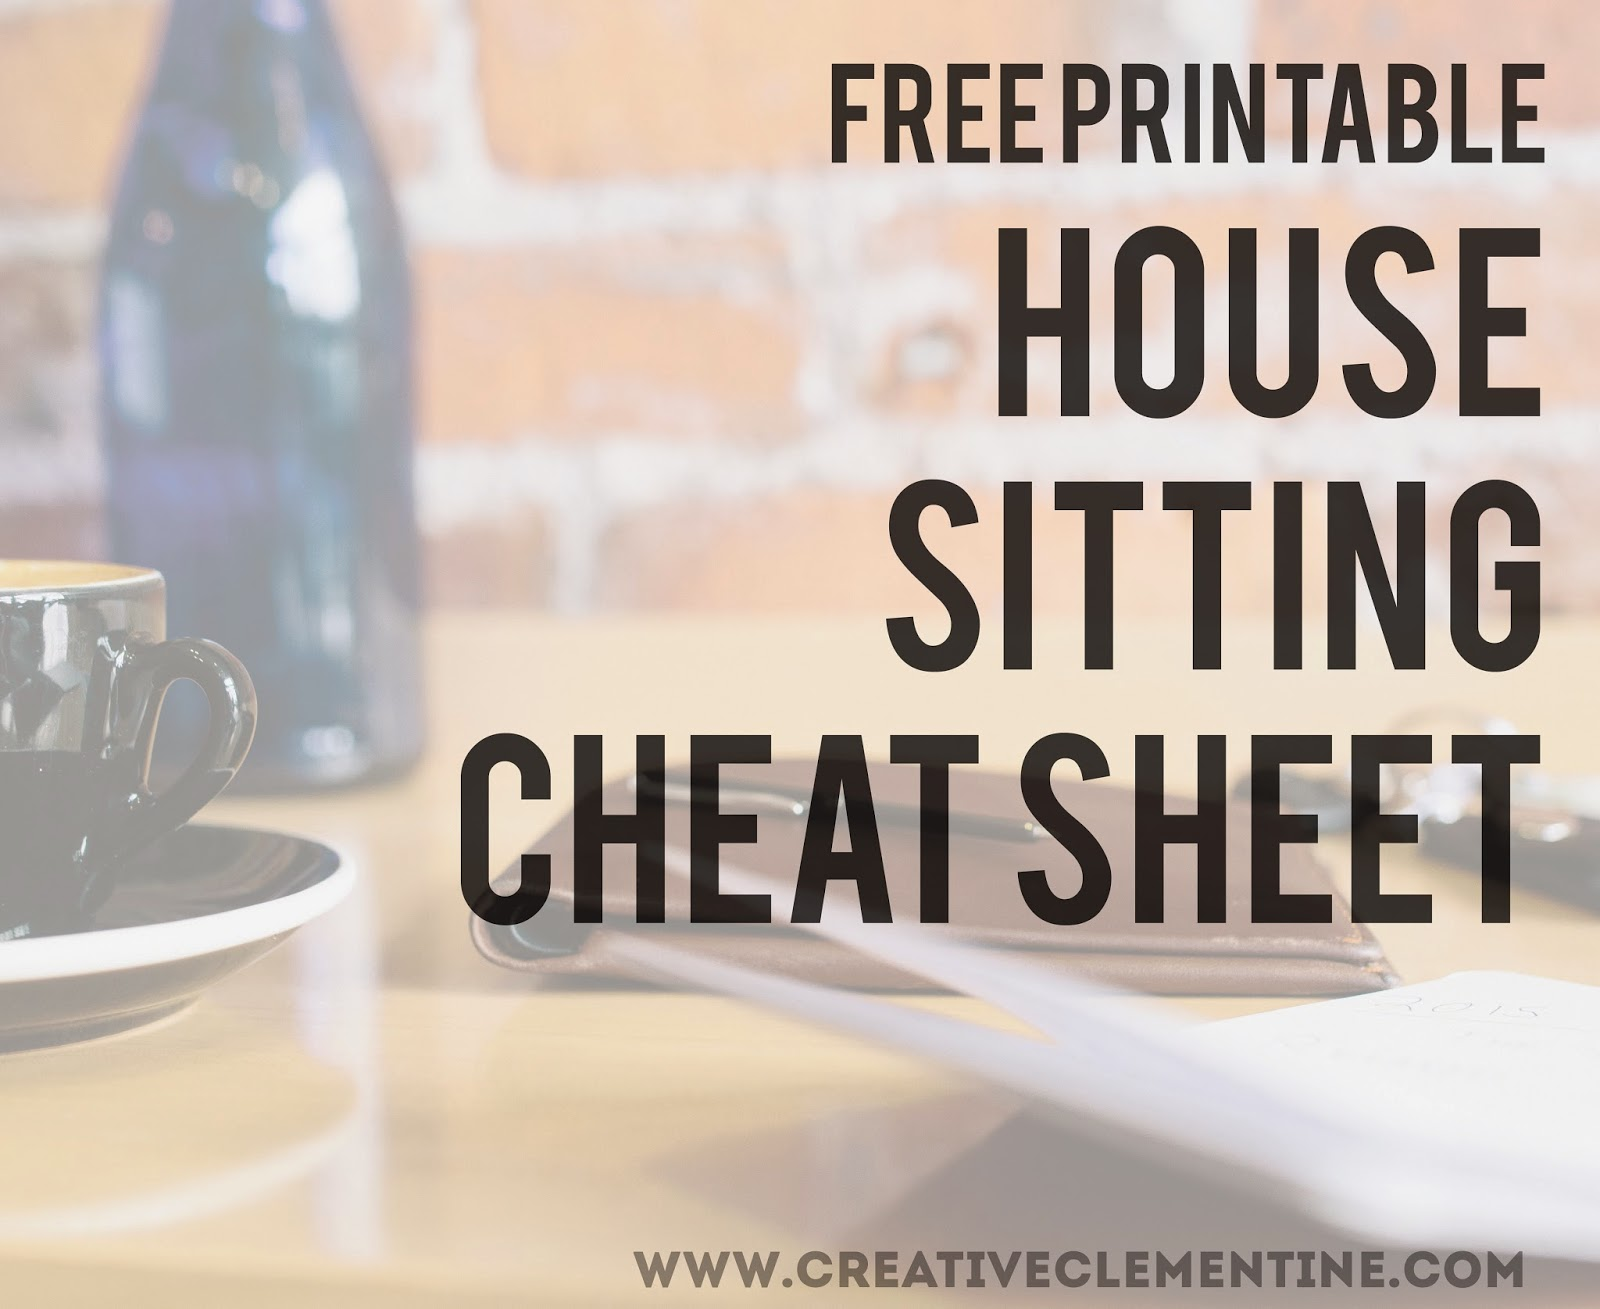 Free printable house sitting cheat sheet creative for House siting